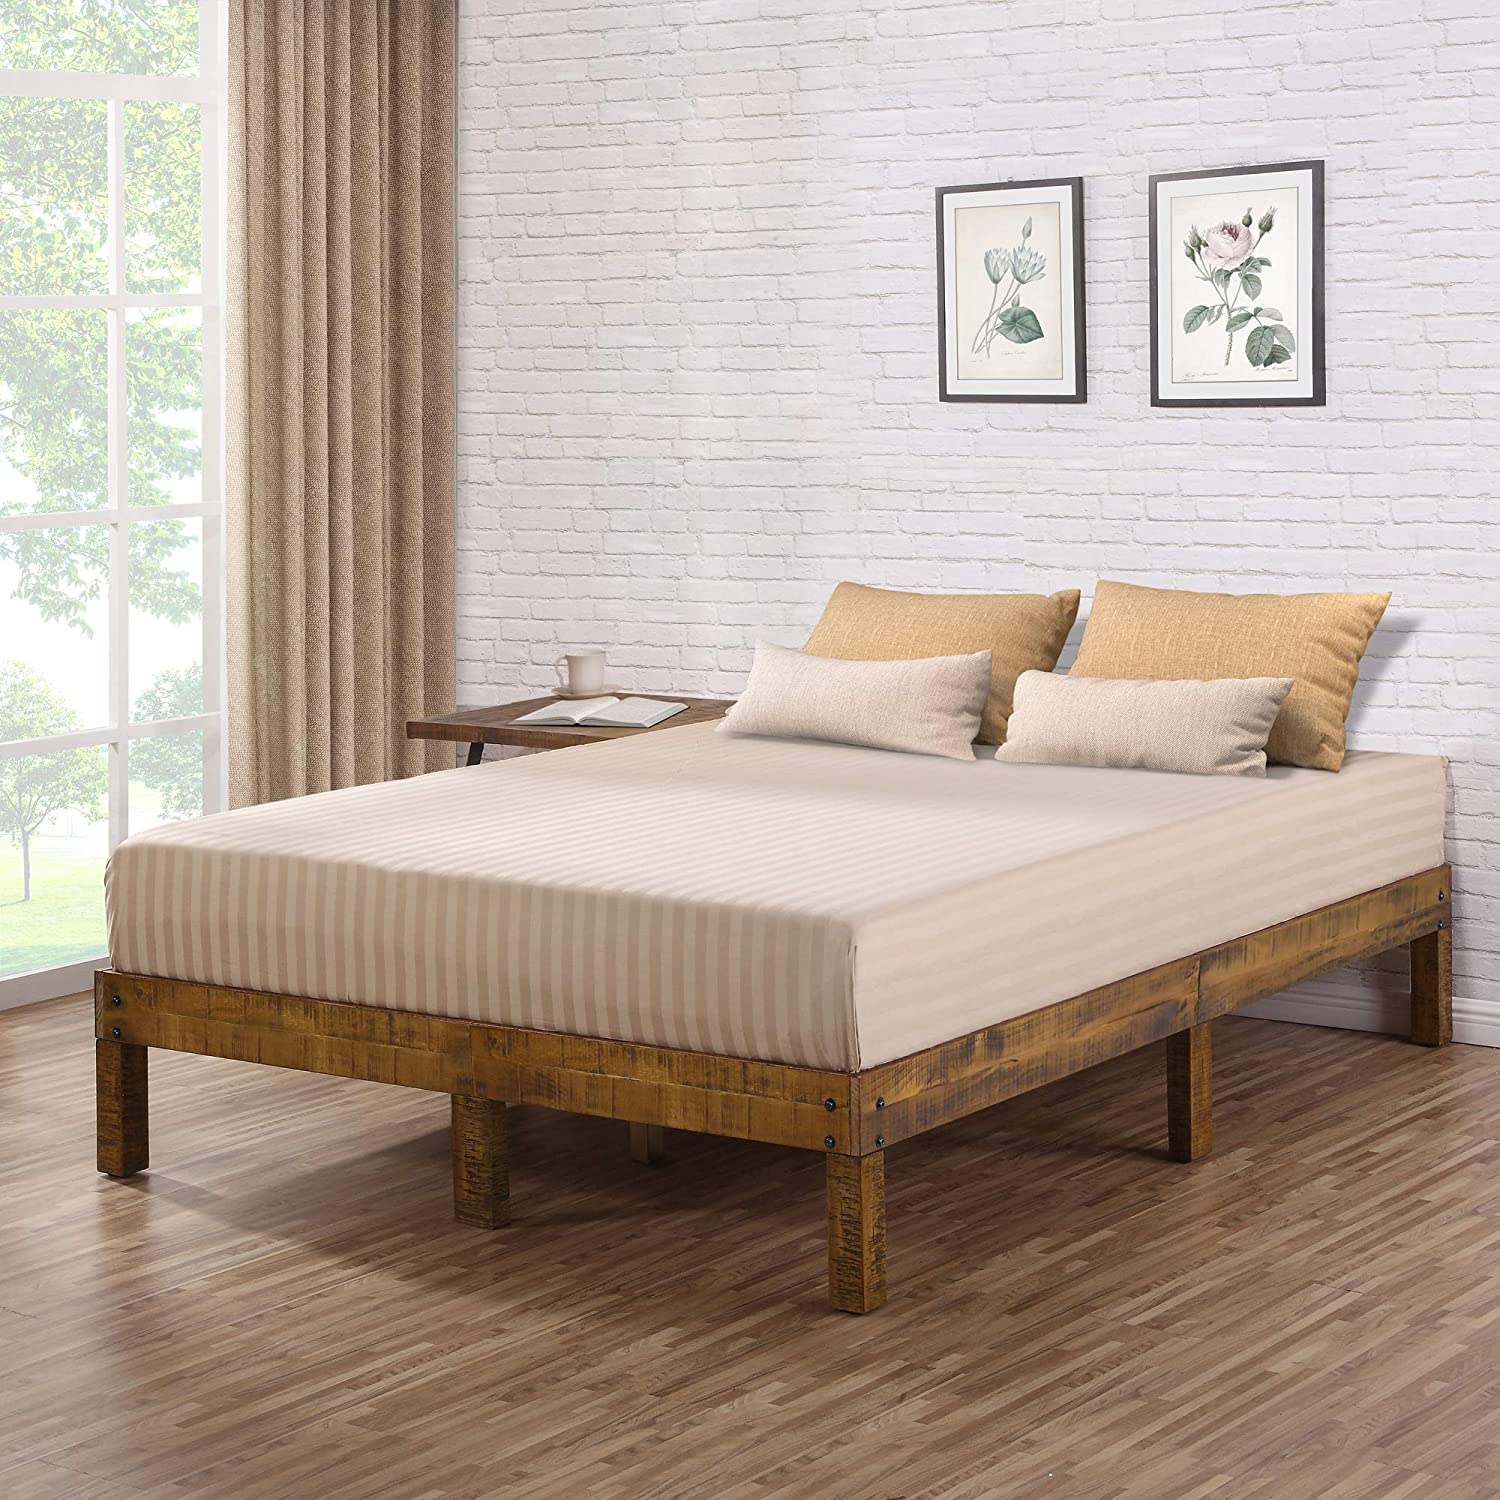 Ecos Living 14 Inch High Rustic Solid Wood Platform Bed with Natural Finish No Box Spring No Squeak, Brown, Full